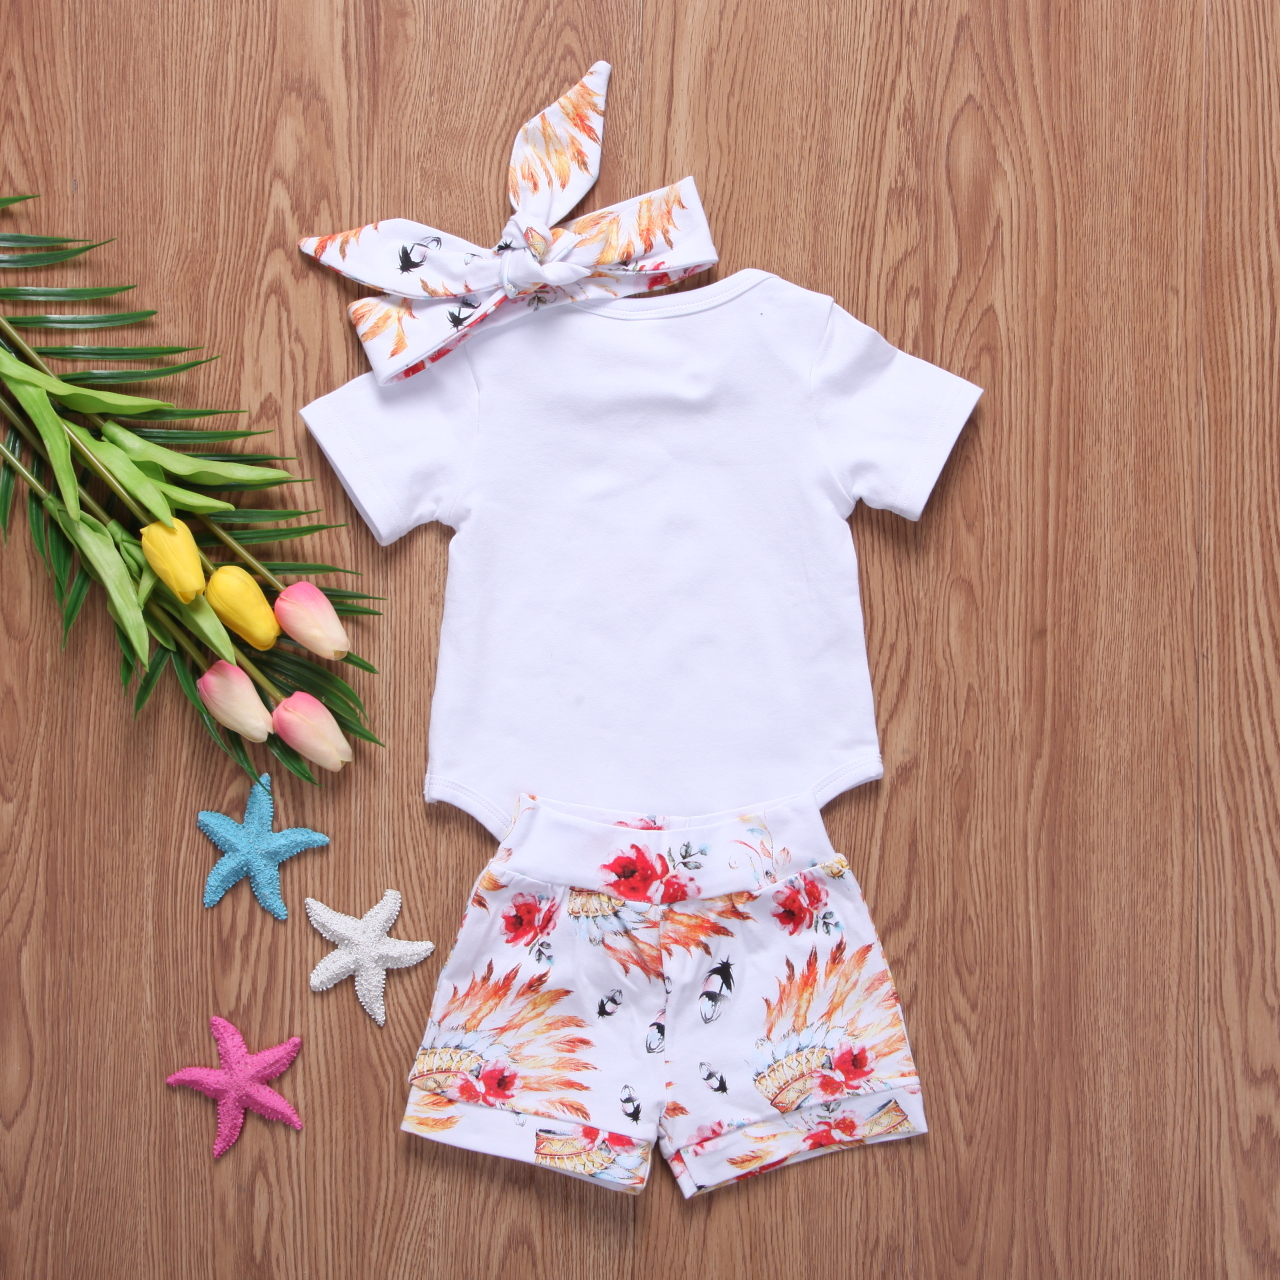 94a95933adb3d Newborn Baby Boy Girls Gypsy Feather Outfits Clothes Tops + Shorts +Headband  3pcs Baby Clothing Set -in Clothing Sets from Mother & Kids on  Aliexpress.com ...